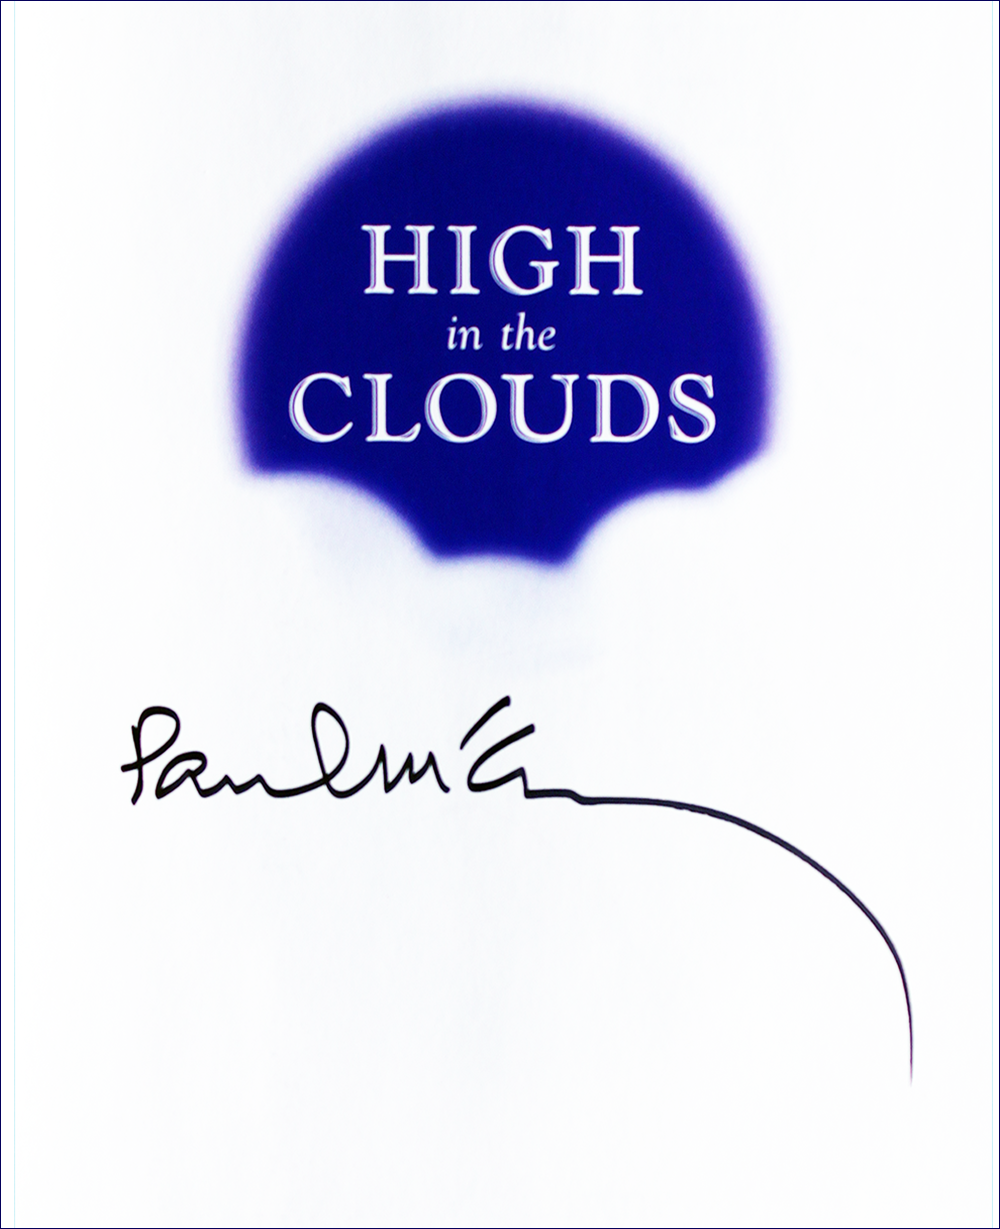 Book - High in the Clouds - Paul McCartney - Inside #2